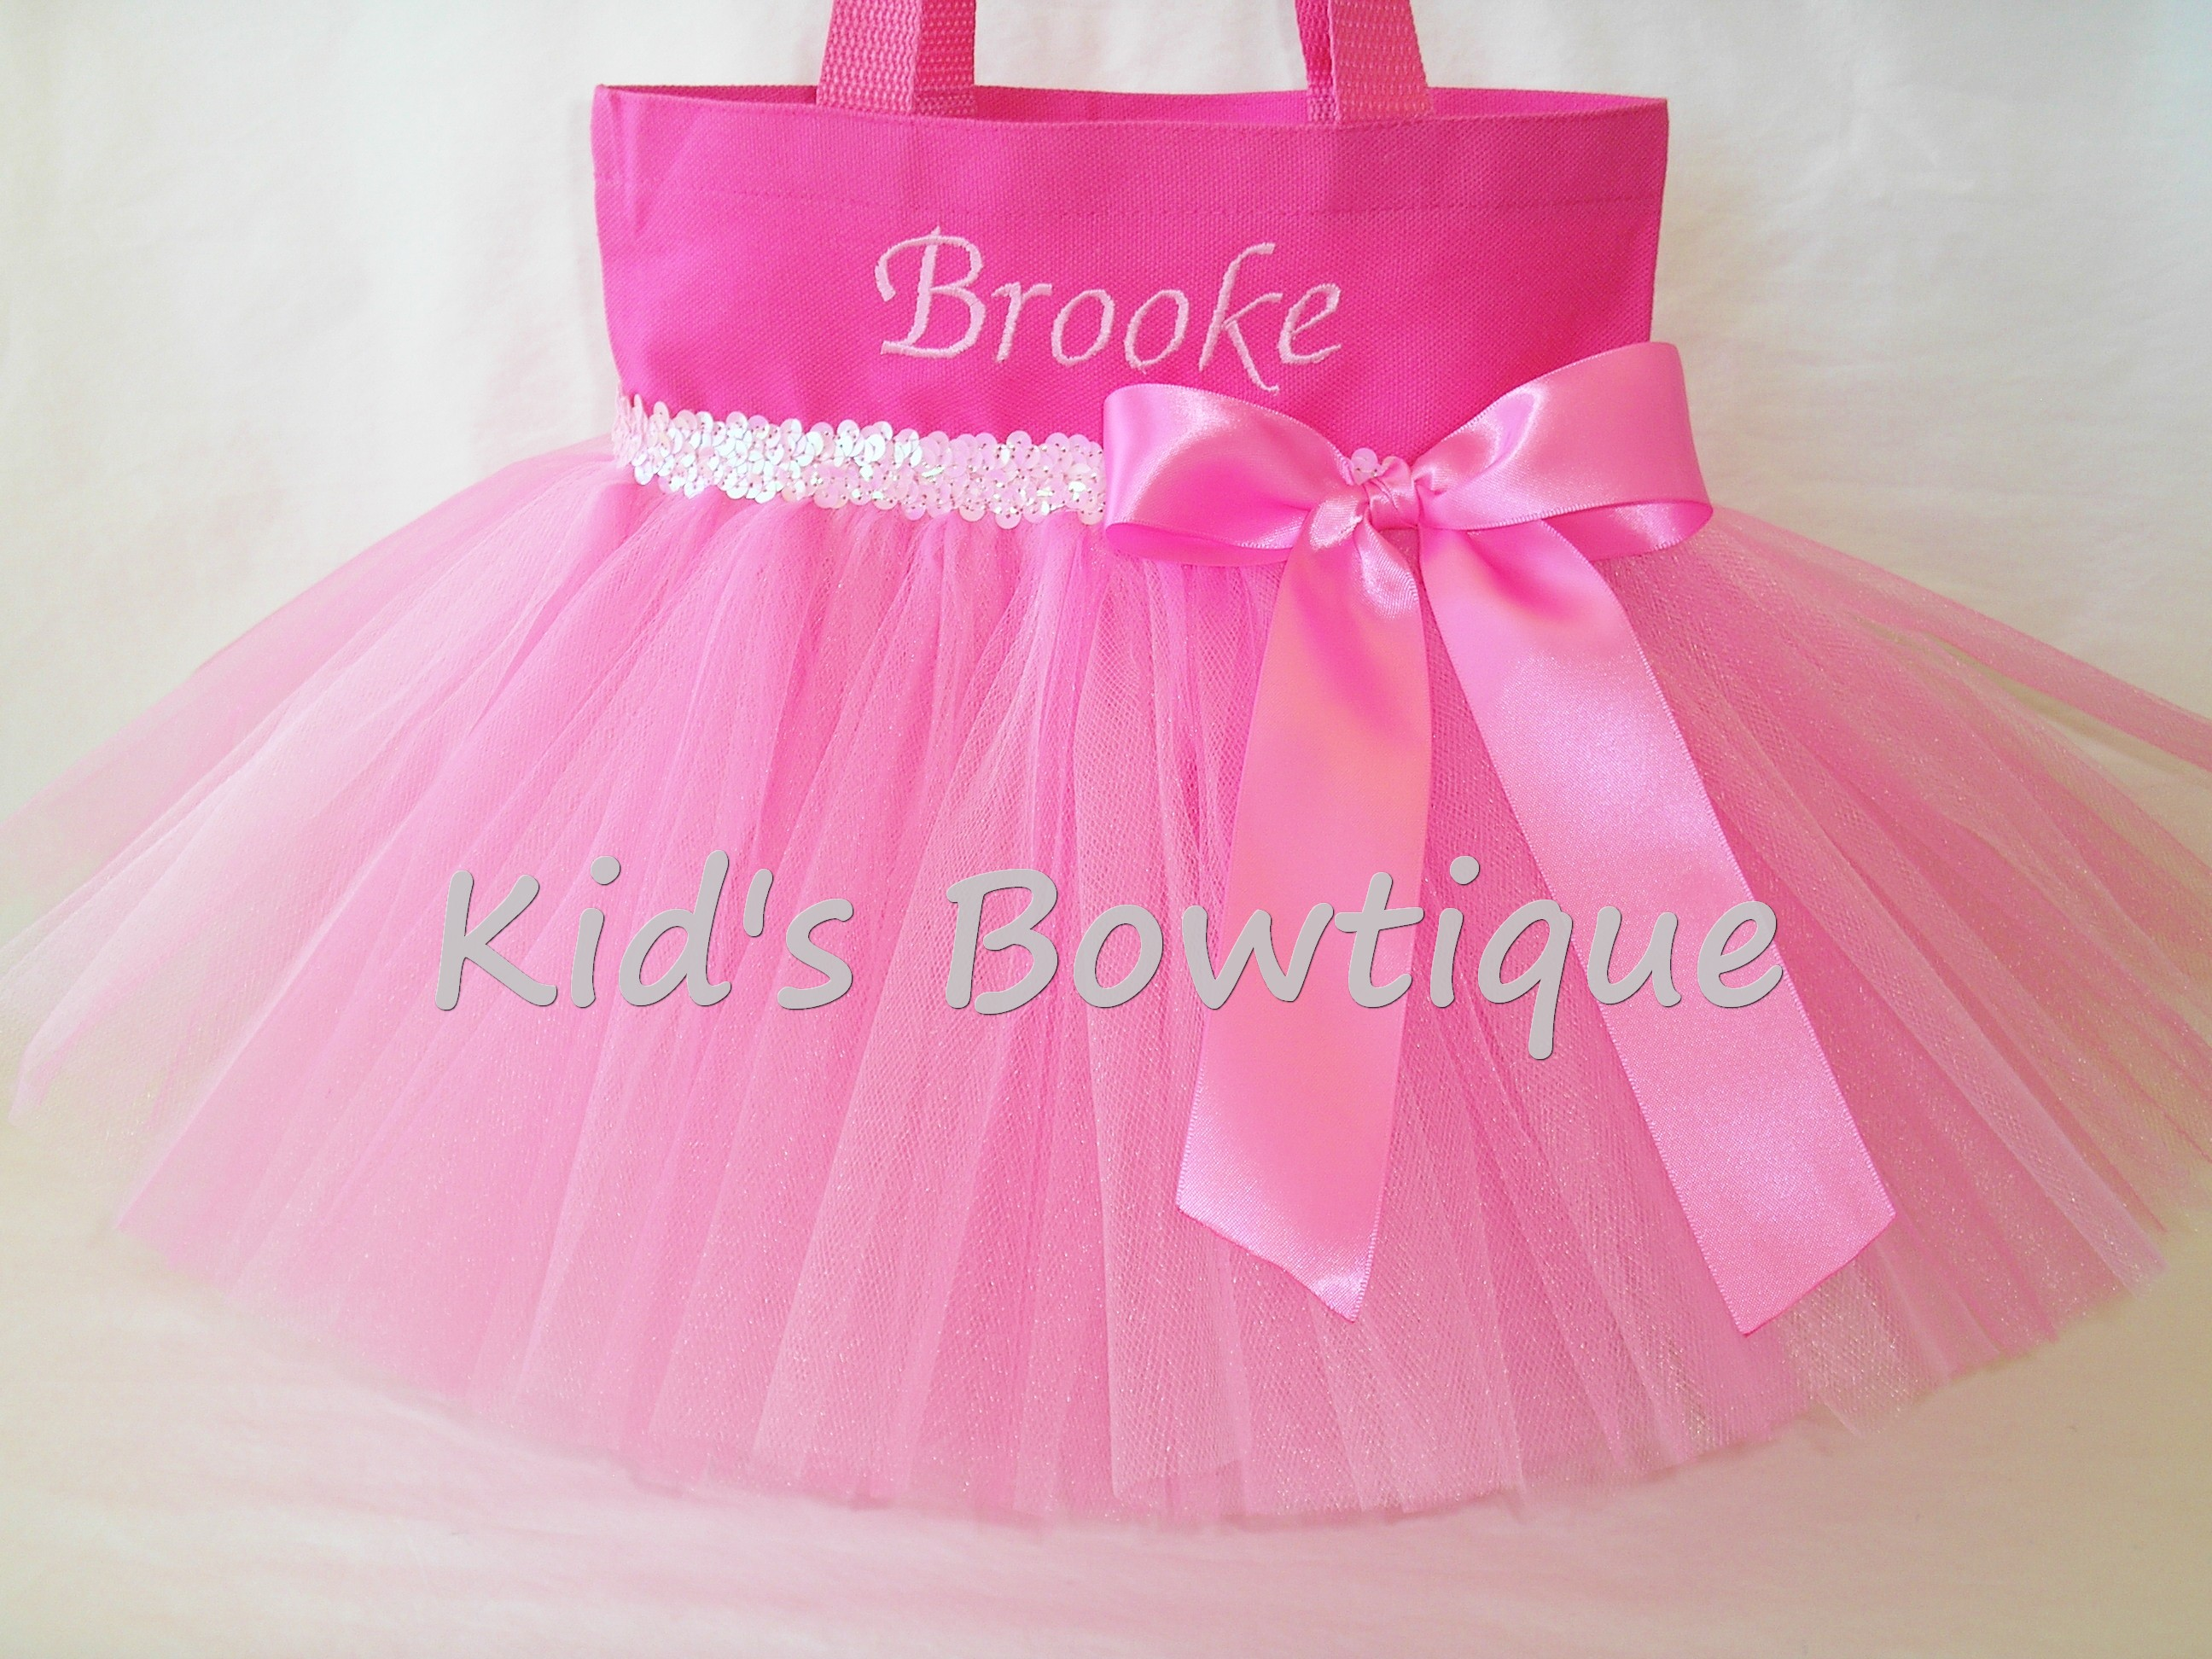 Monogrammed Tutu Tote Bag - Item ttb16 Princess Pink Dance Tutu Bag with Sequins and Bow